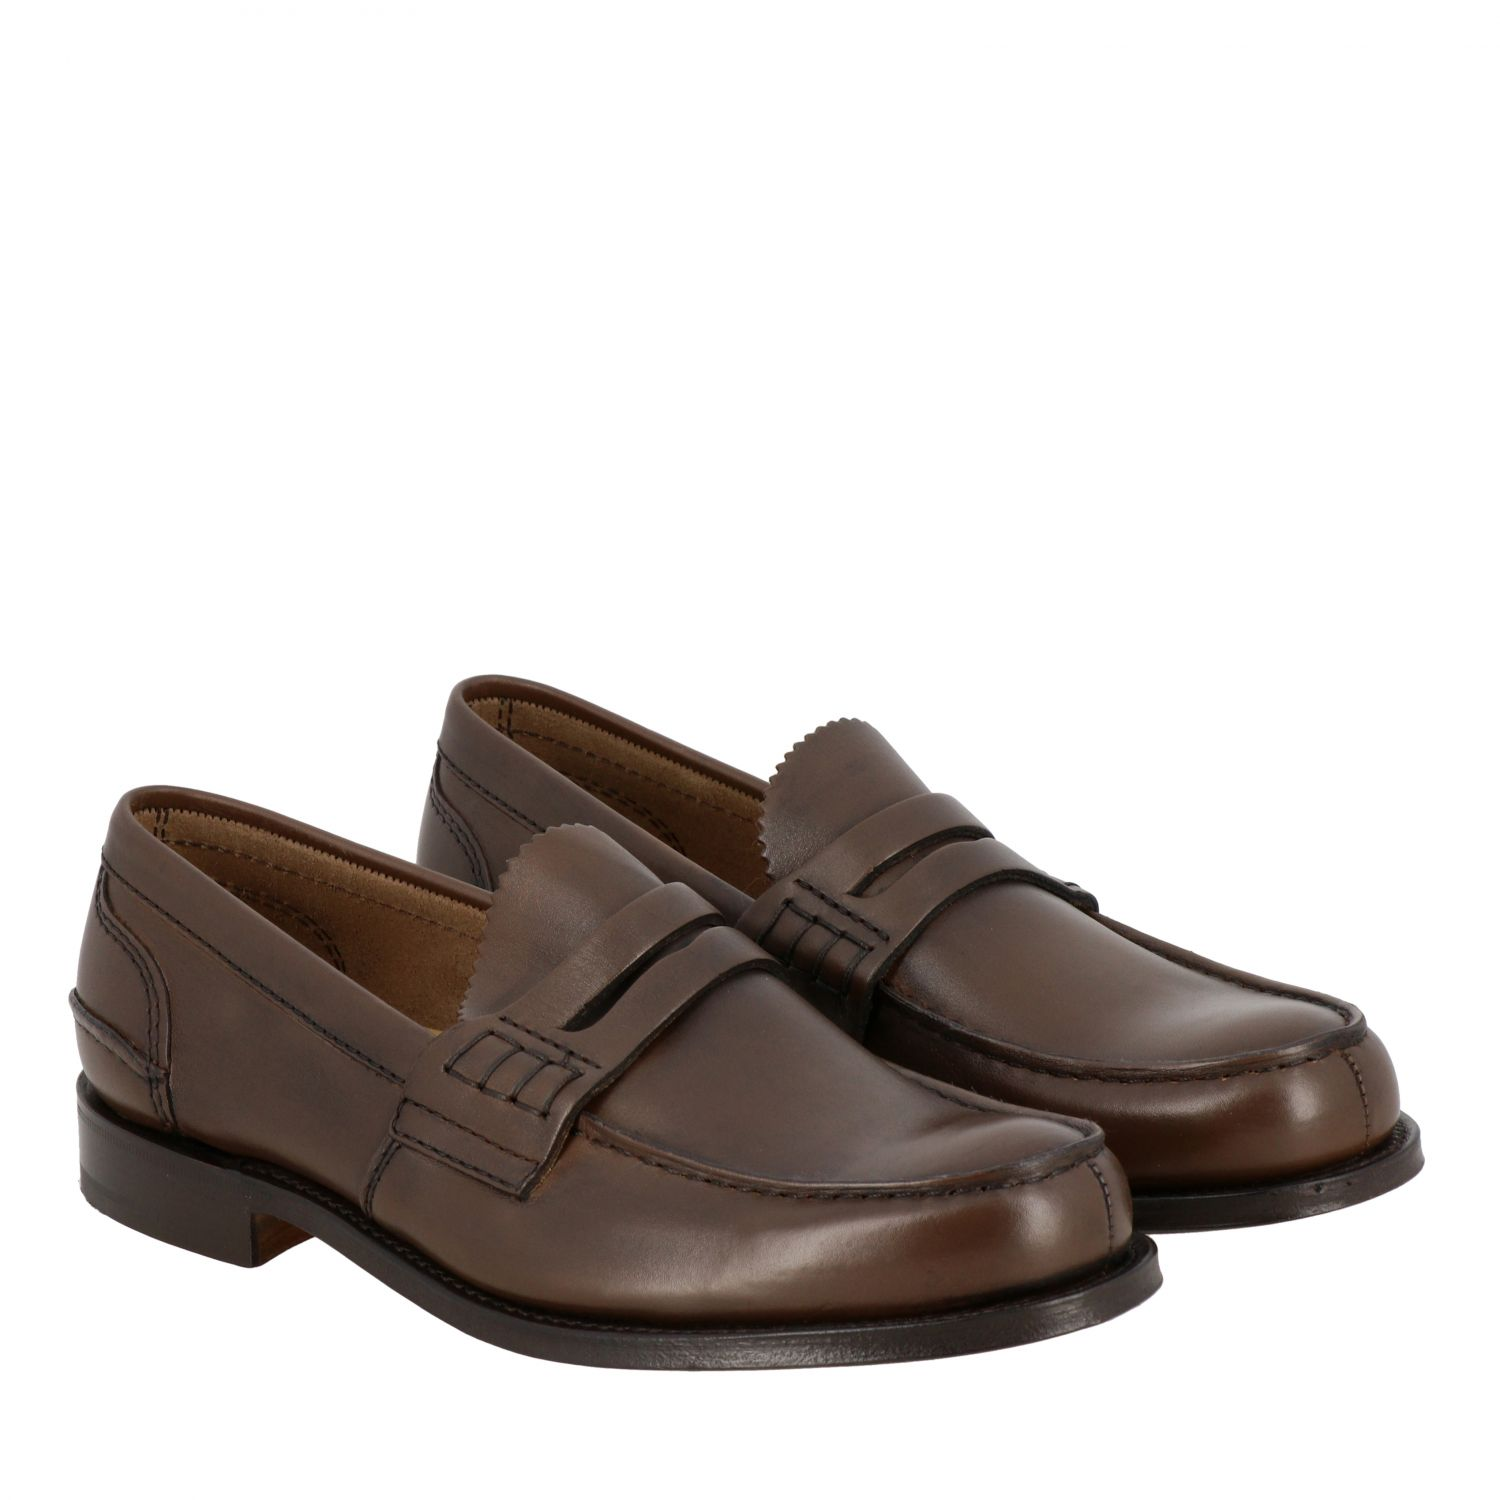 Loafers Church's: Pembrey Church's leather loafer honey 2